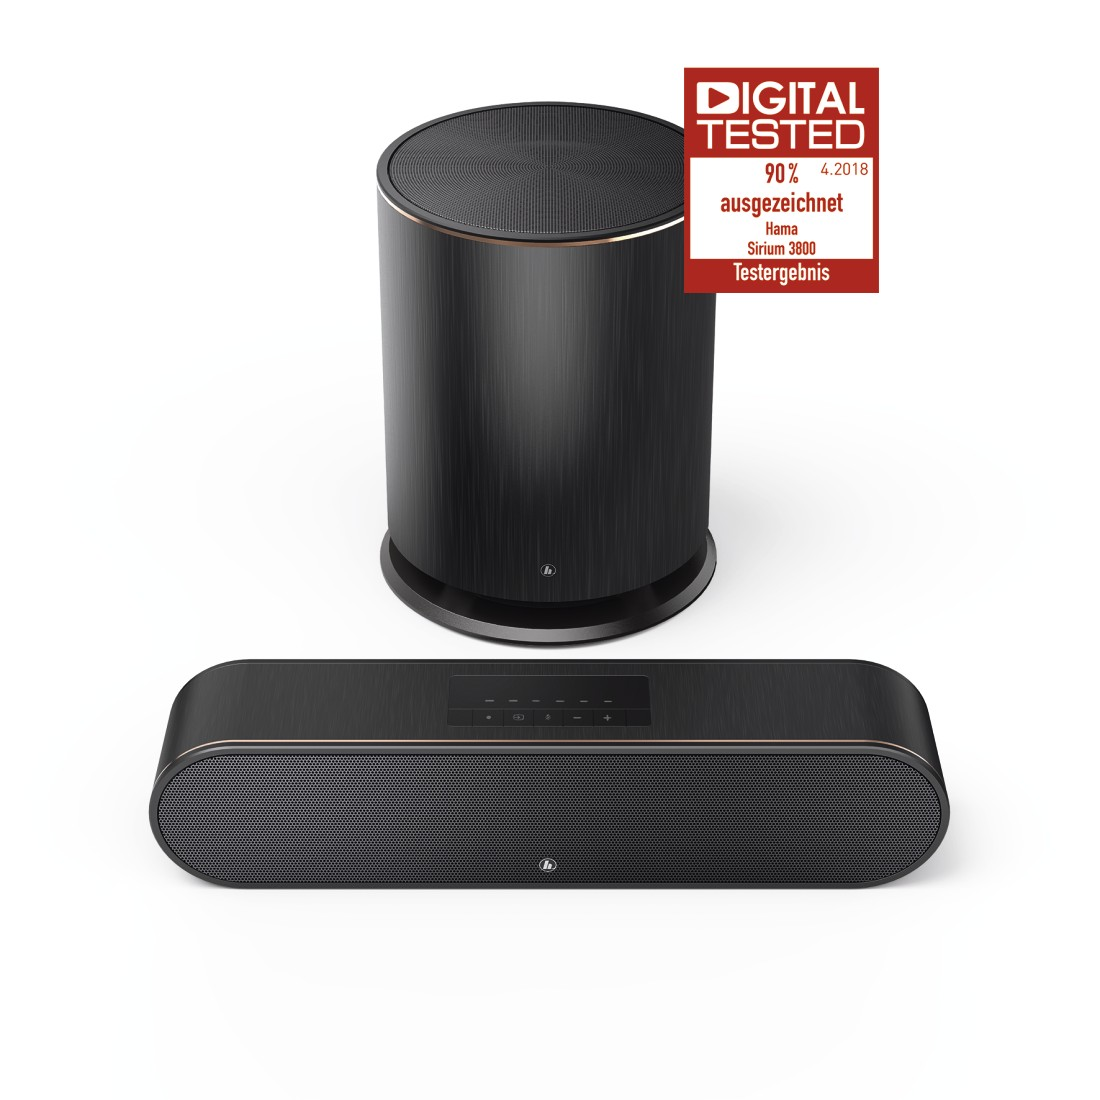 "uax Druckfähige Abbildung Logo - Hama, Smart-slim-soundbar 2.1 ""SIRIUM3800ABT"" wireless subwoofer/Alexa/Bluetooth®"